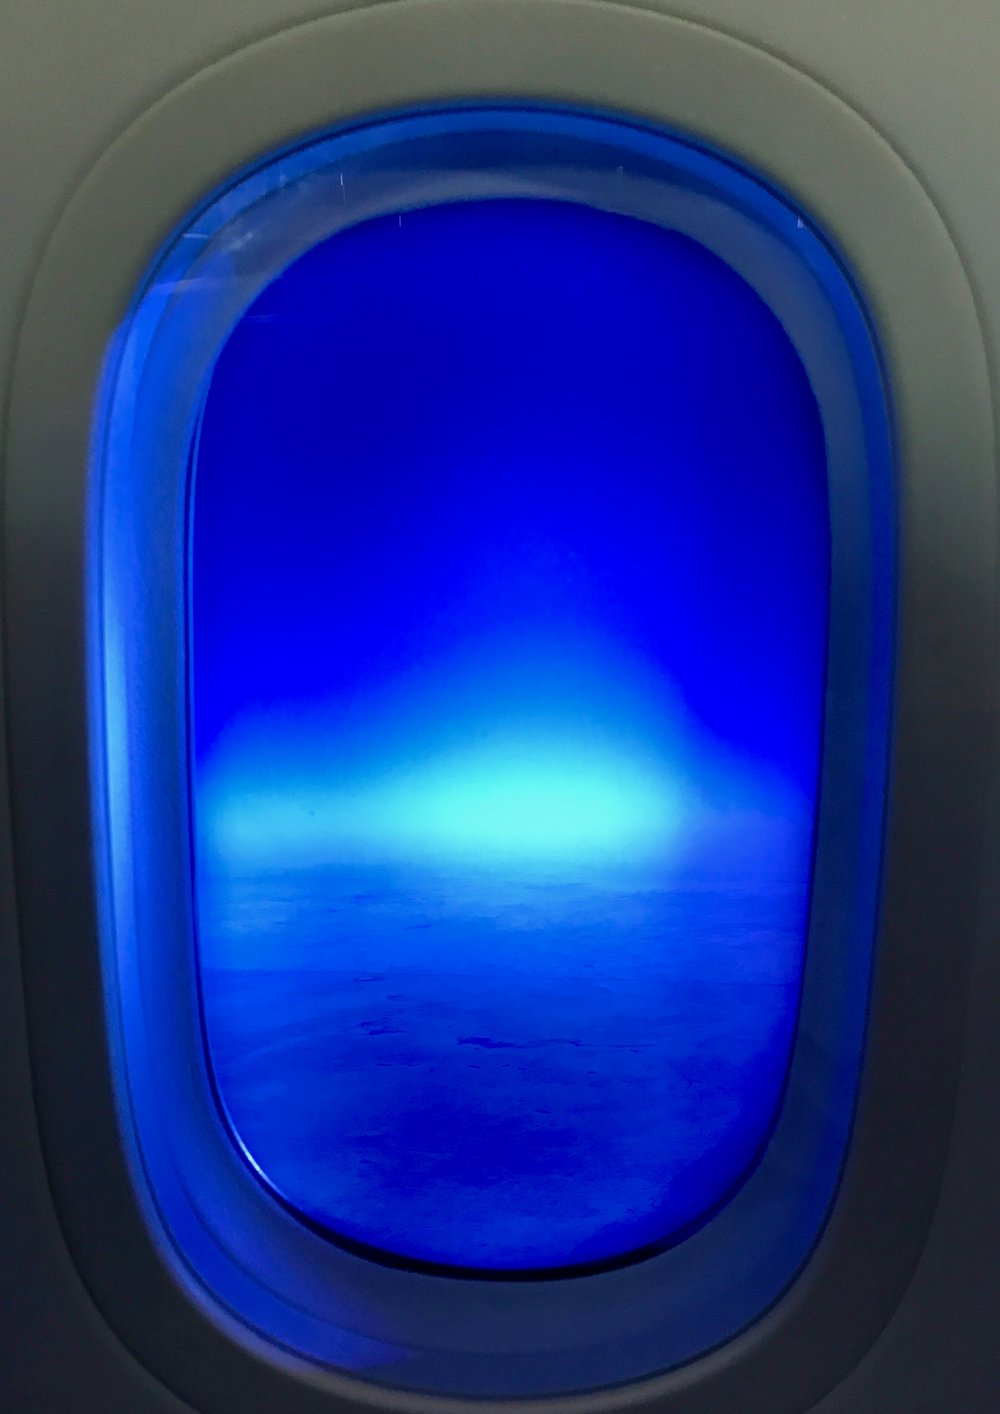 View from the dimmed 787 Dreamliner window